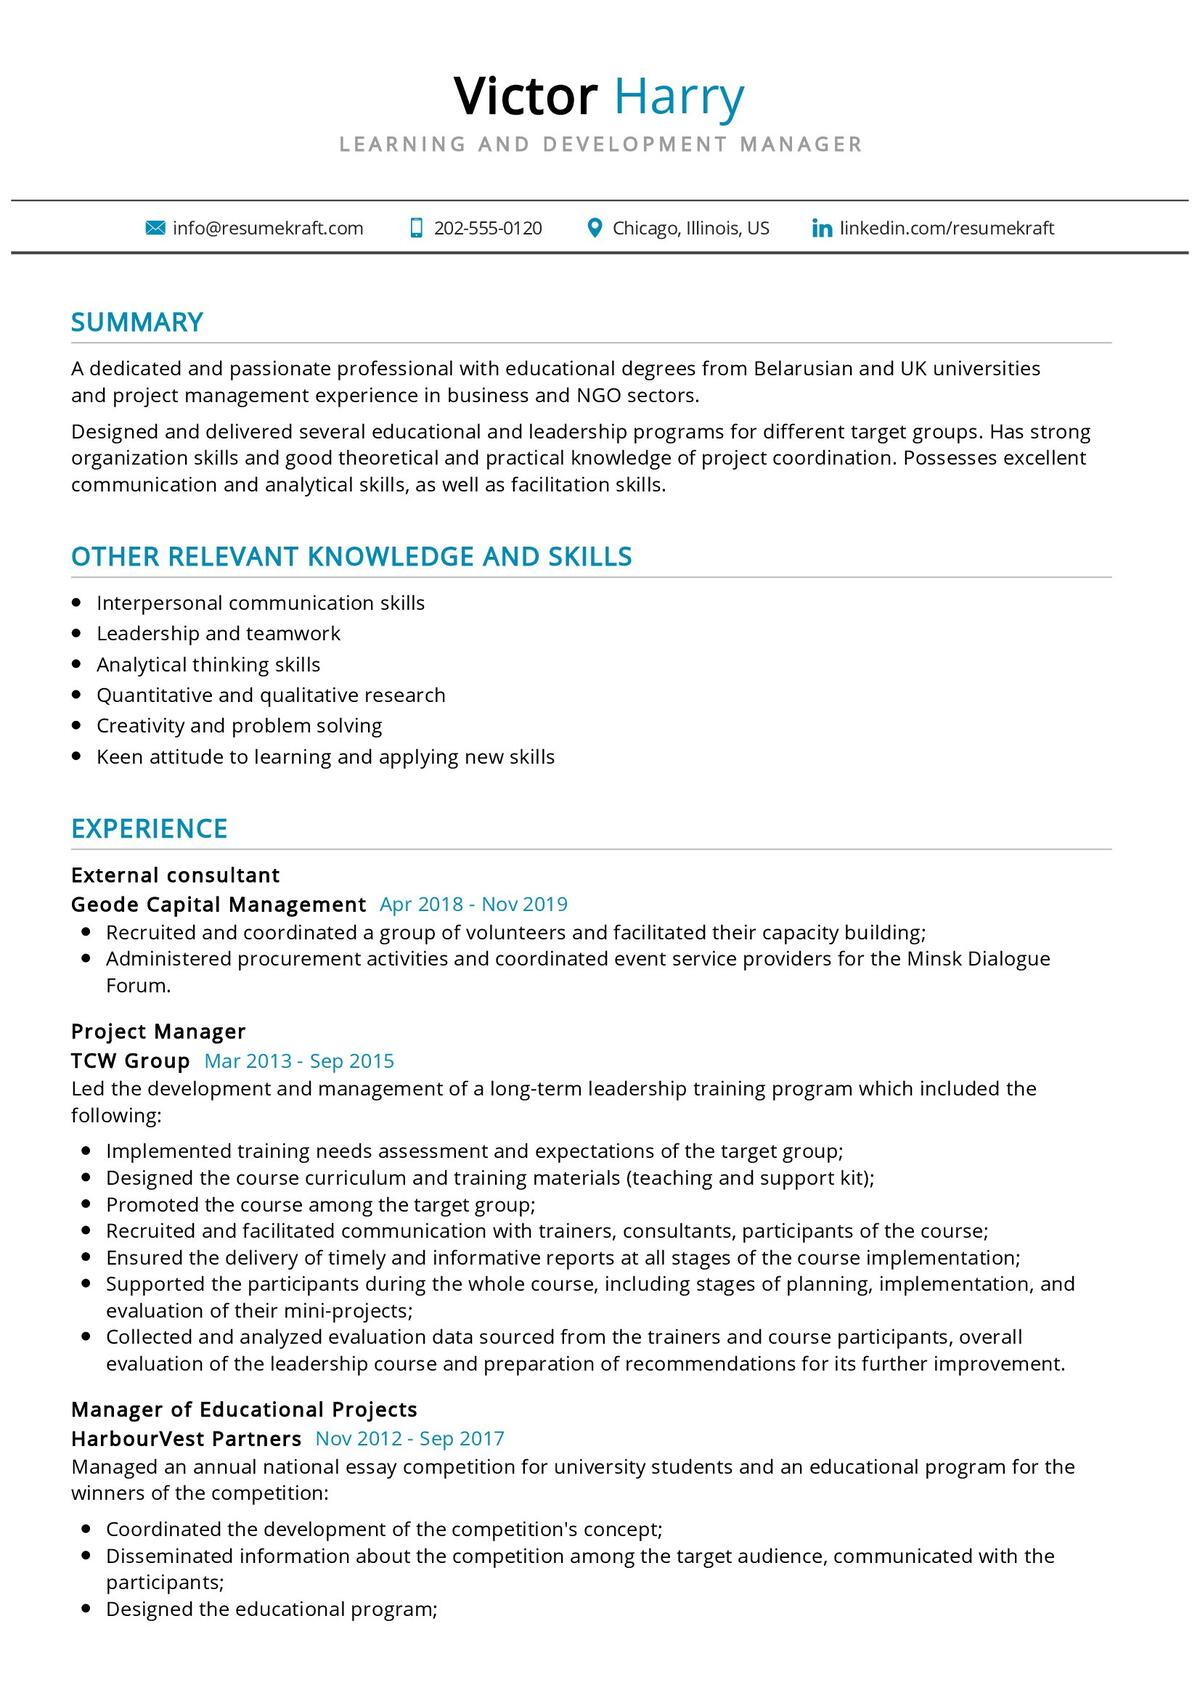 Learning and Development Manager Resume